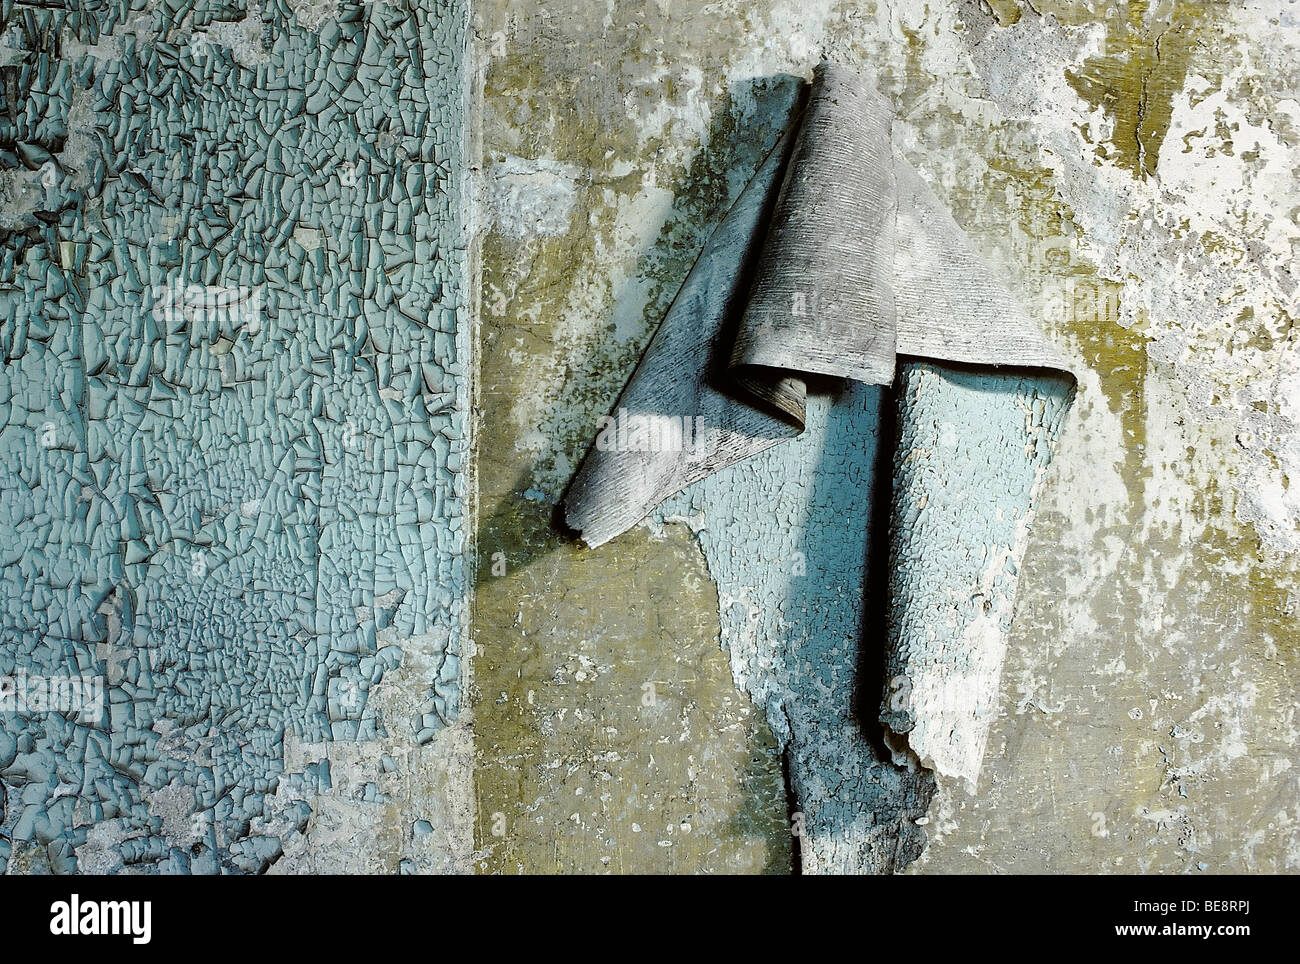 Wall with peeling paint and old, detached wall paper, moisture damage, uninhabitable home, Duisburg-Hochfeld, Ruhr - Stock Image